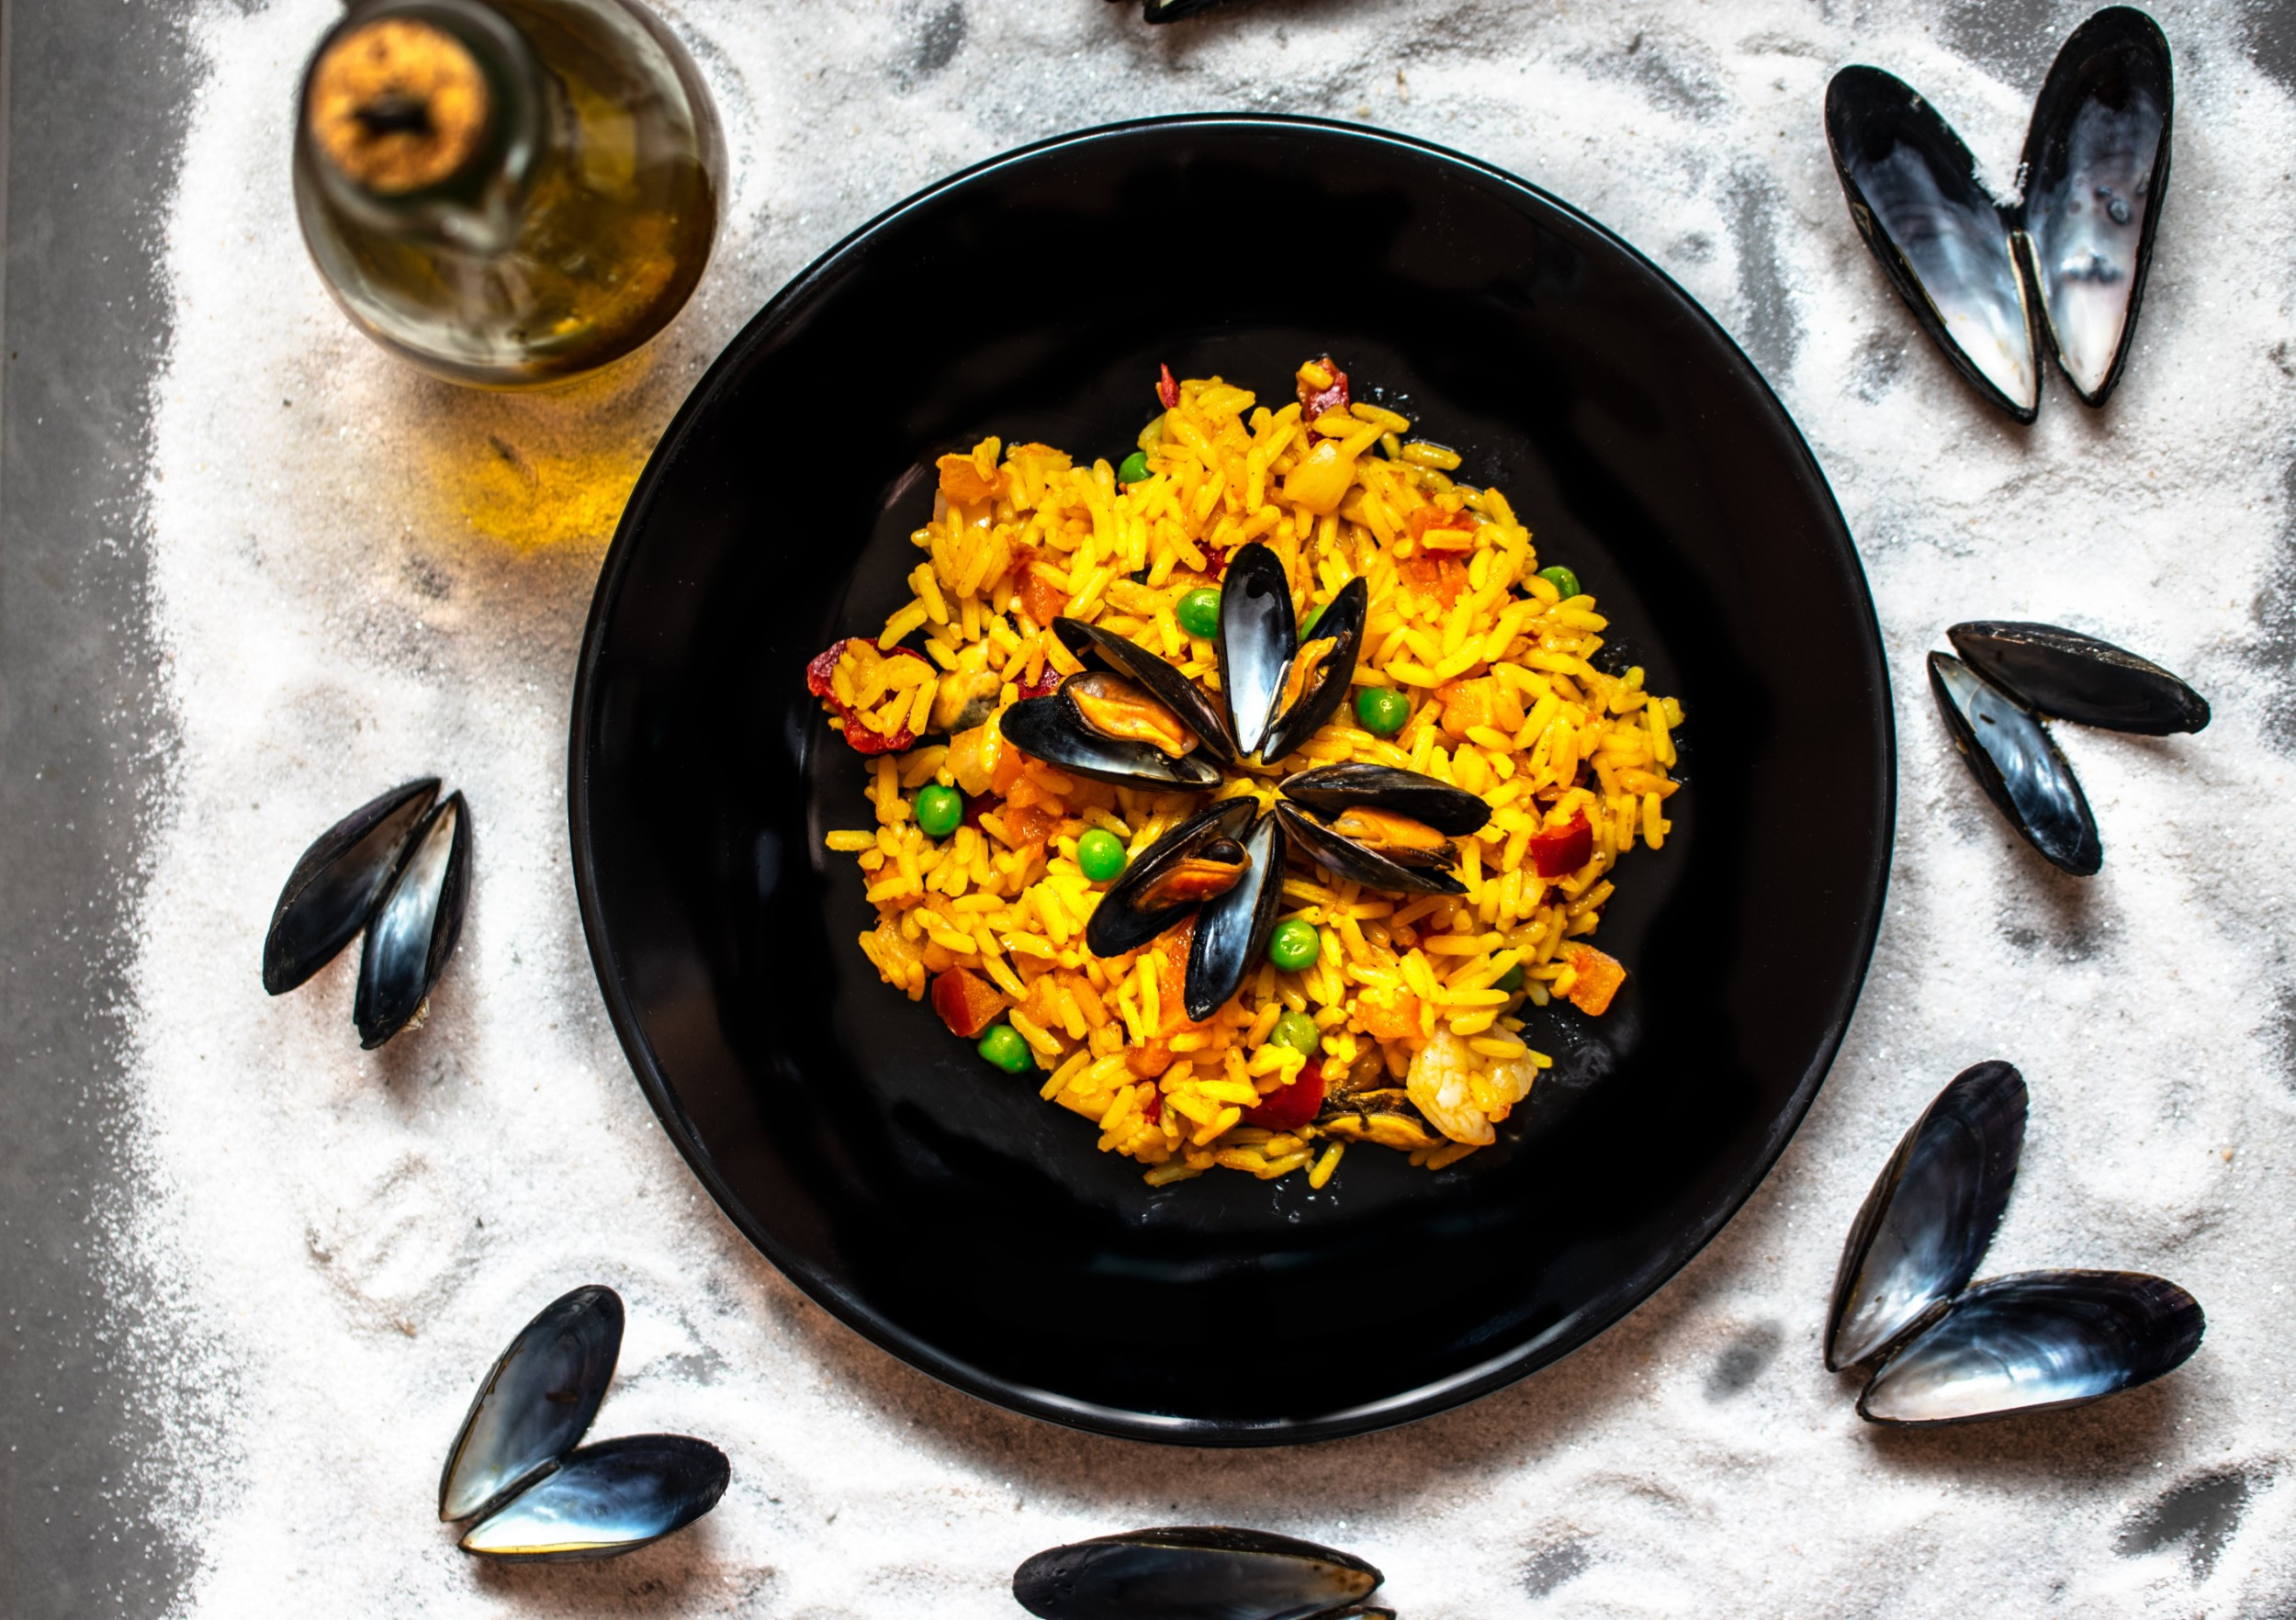 An authentic Spanish paella